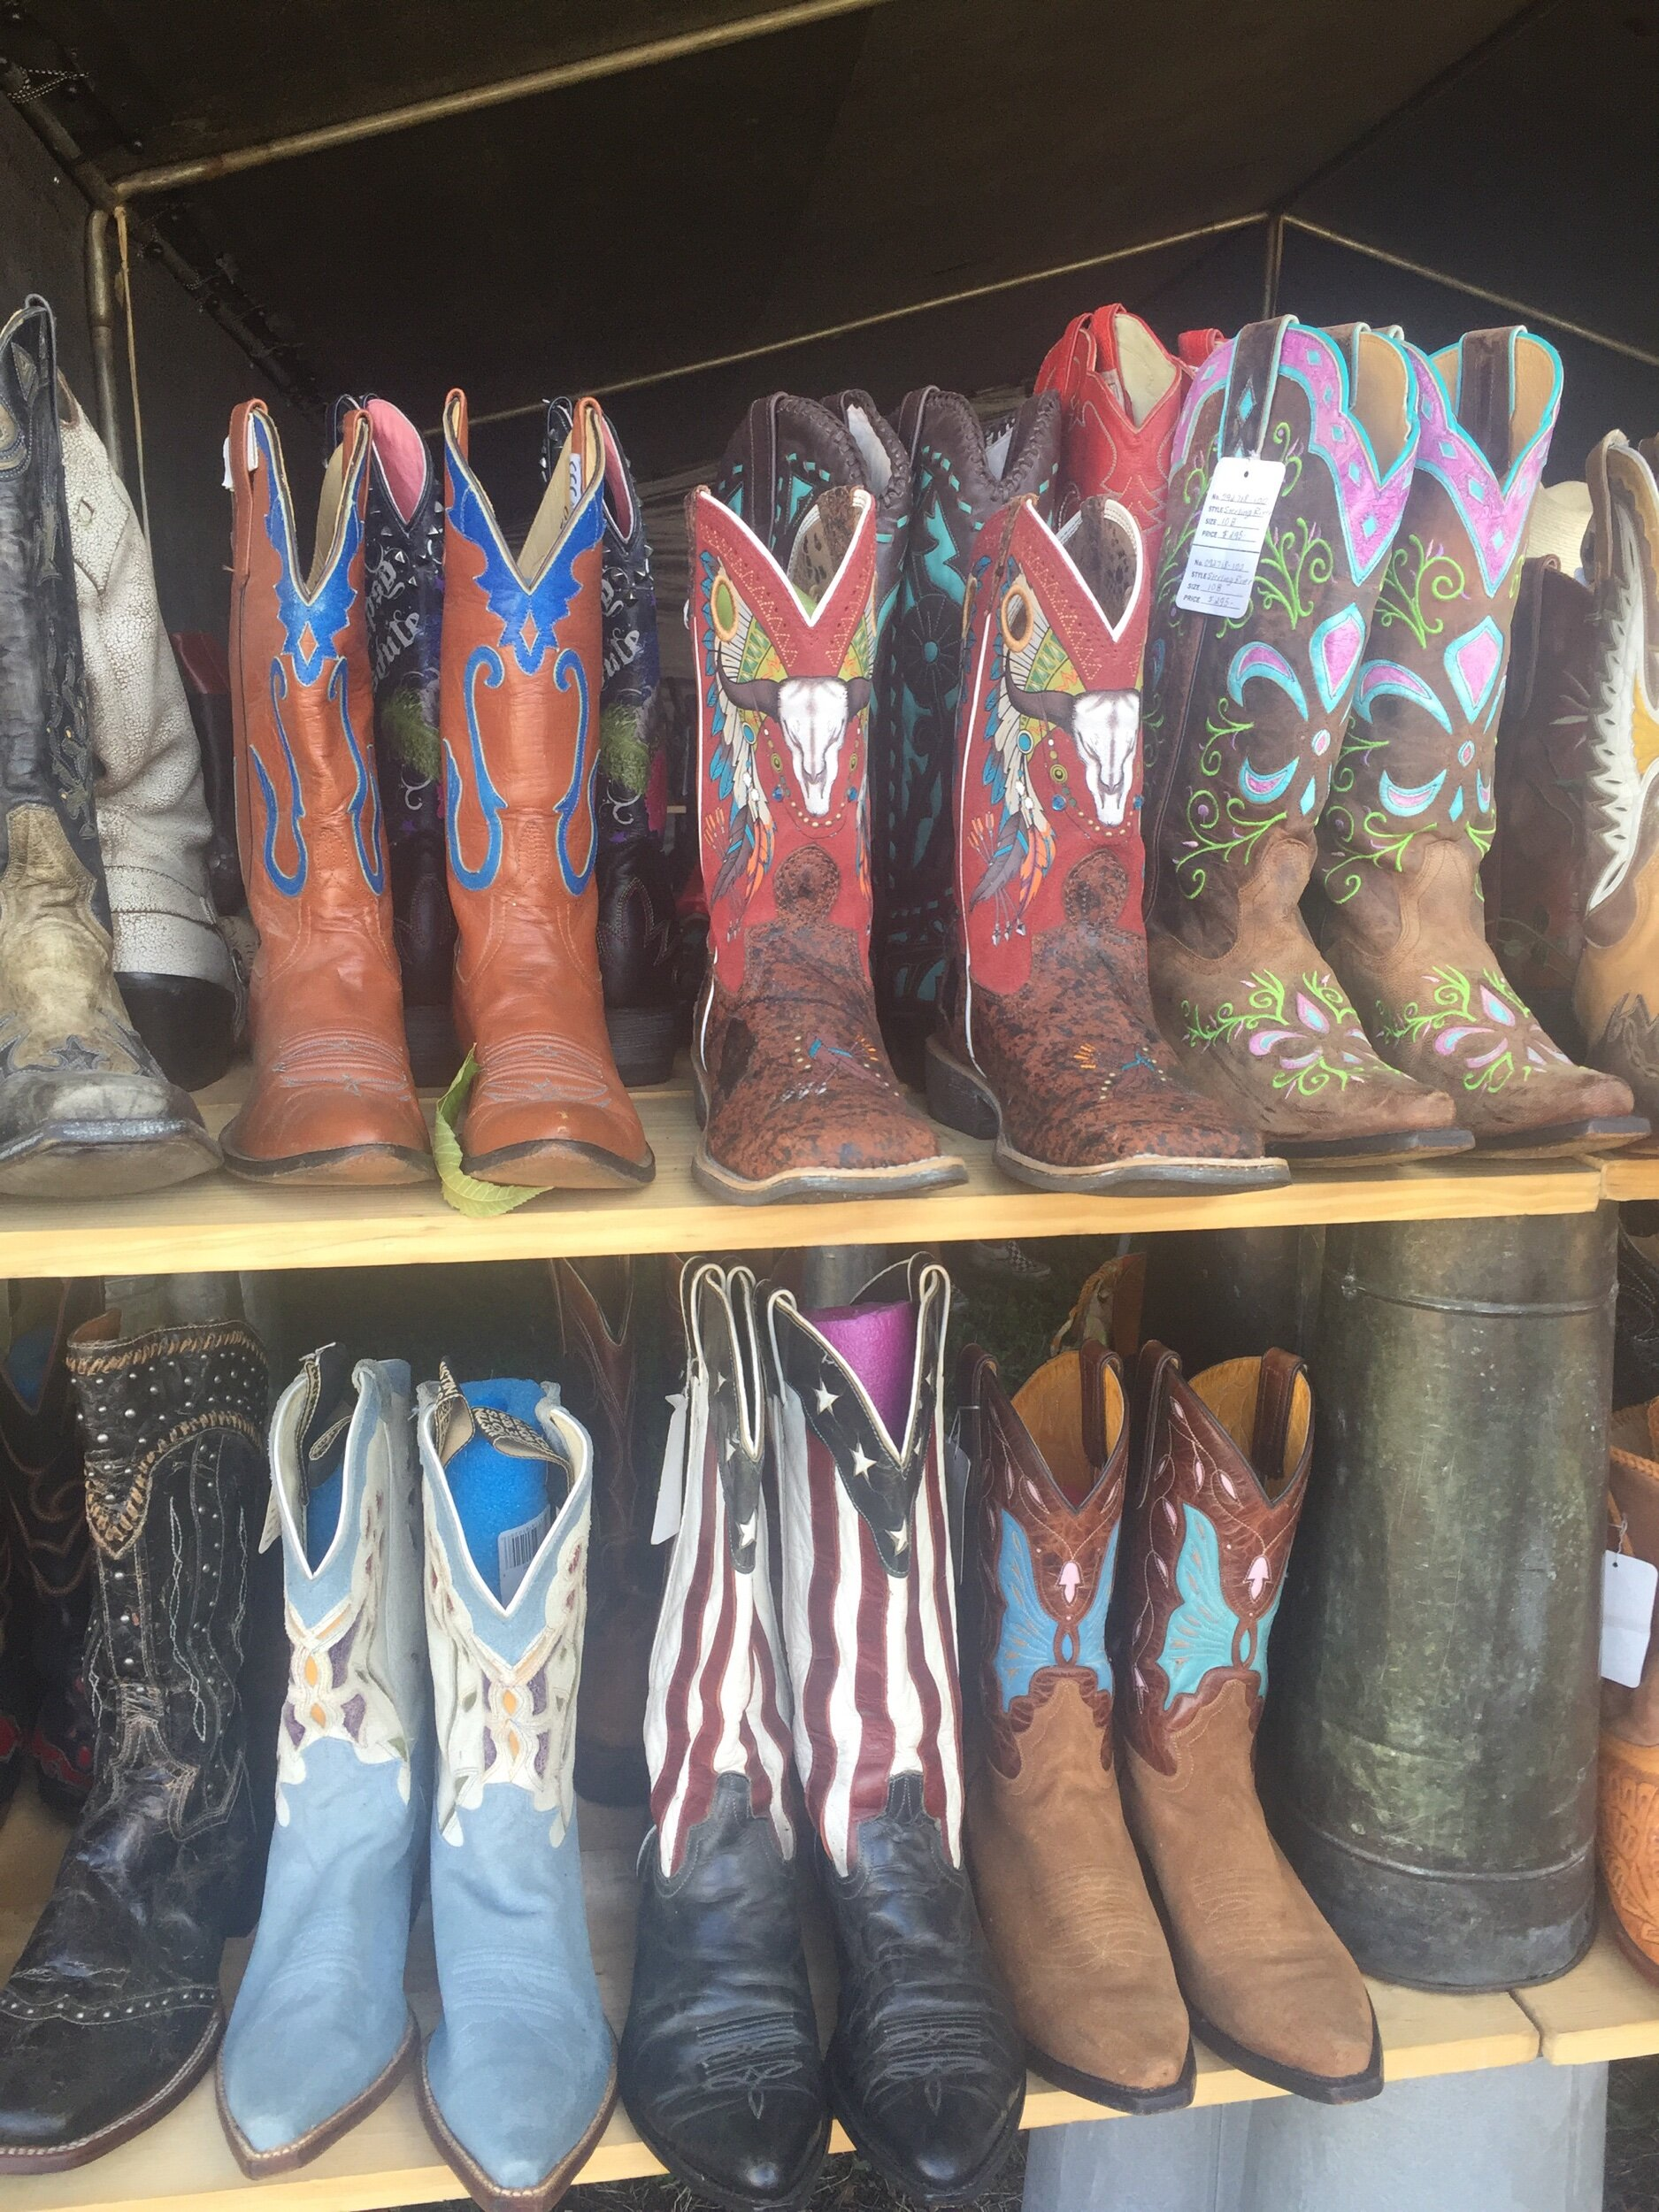 When in Texas you got to have fun cowboy boots!